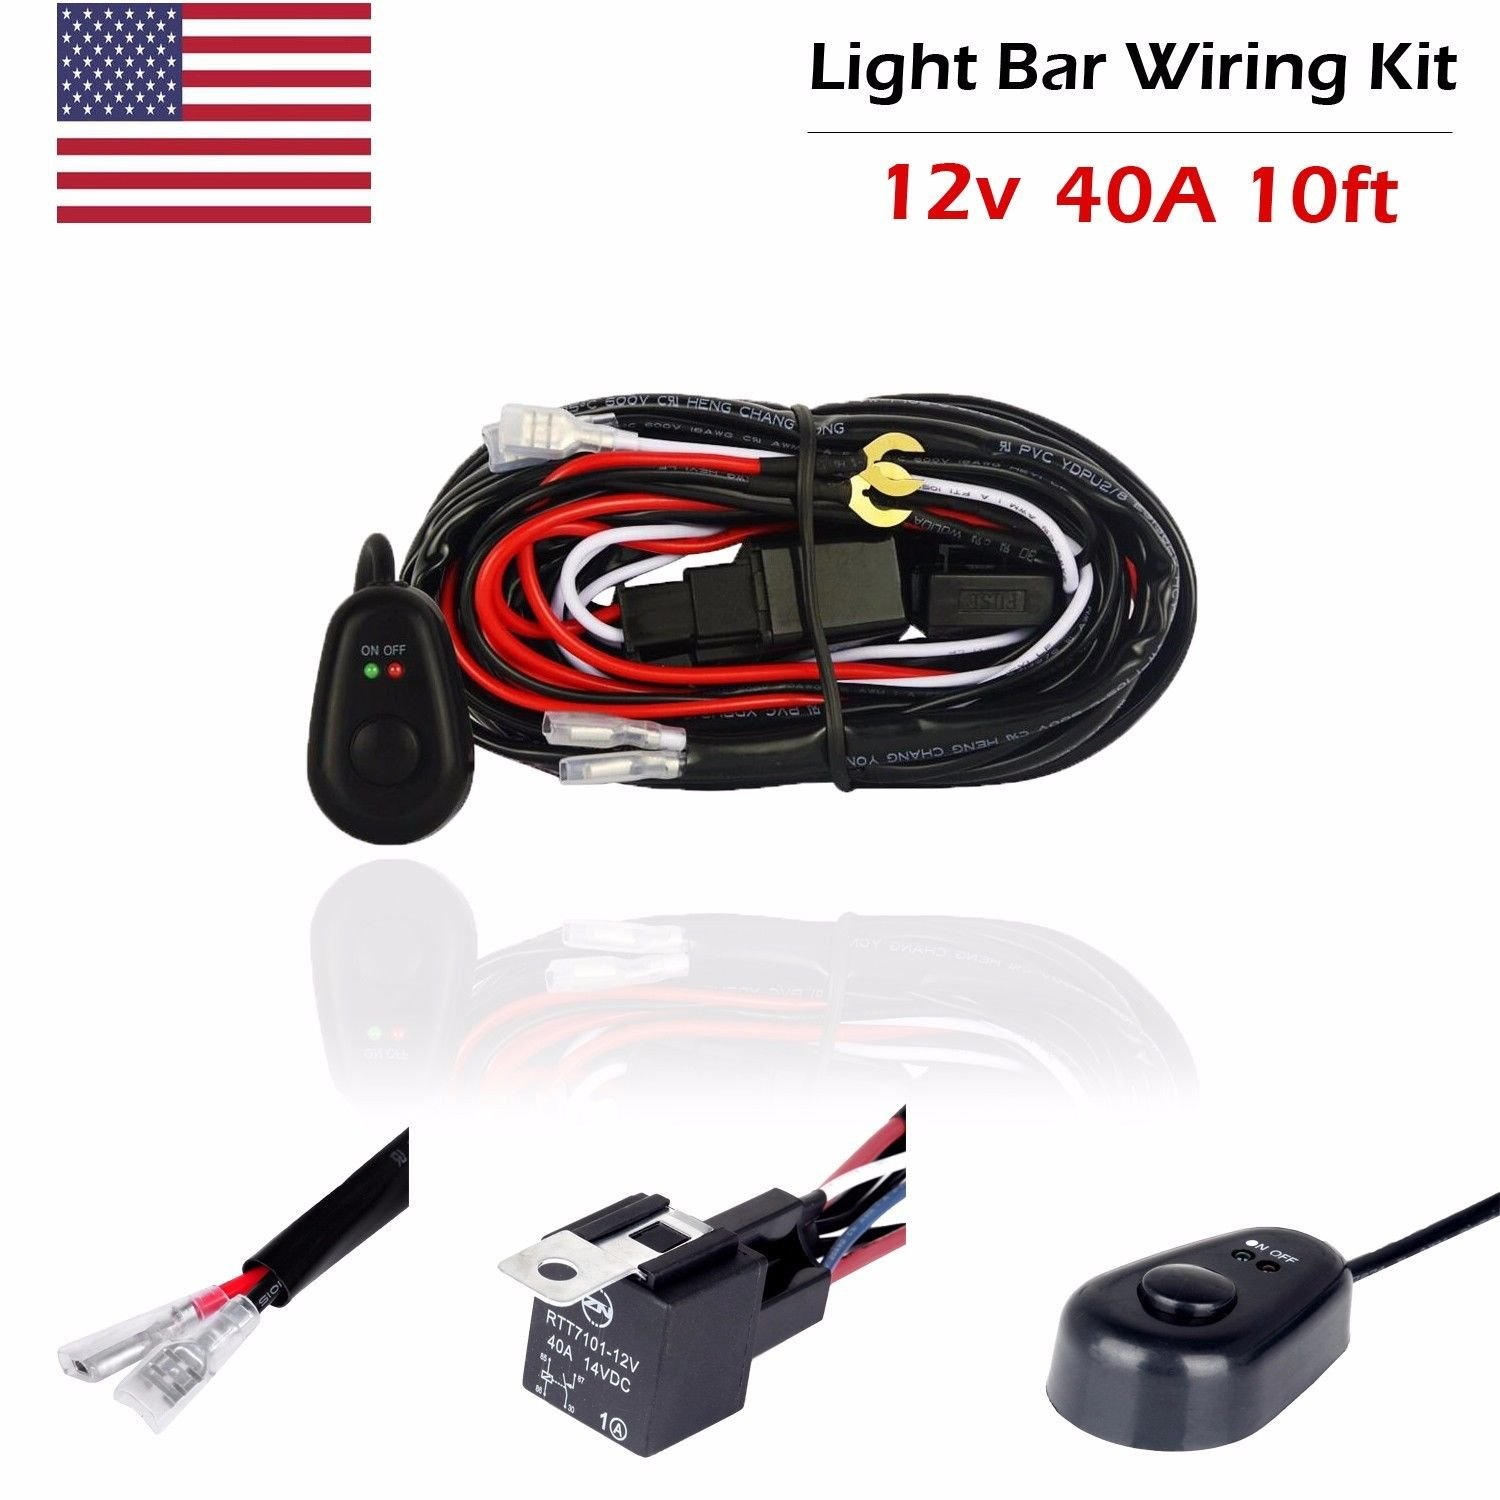 Led Work Light Bar Wiring Harness Kit 12v 40a Fuse Relay Diagram In Addition 7 Wire Trailer On Off Switch Cable Automotive